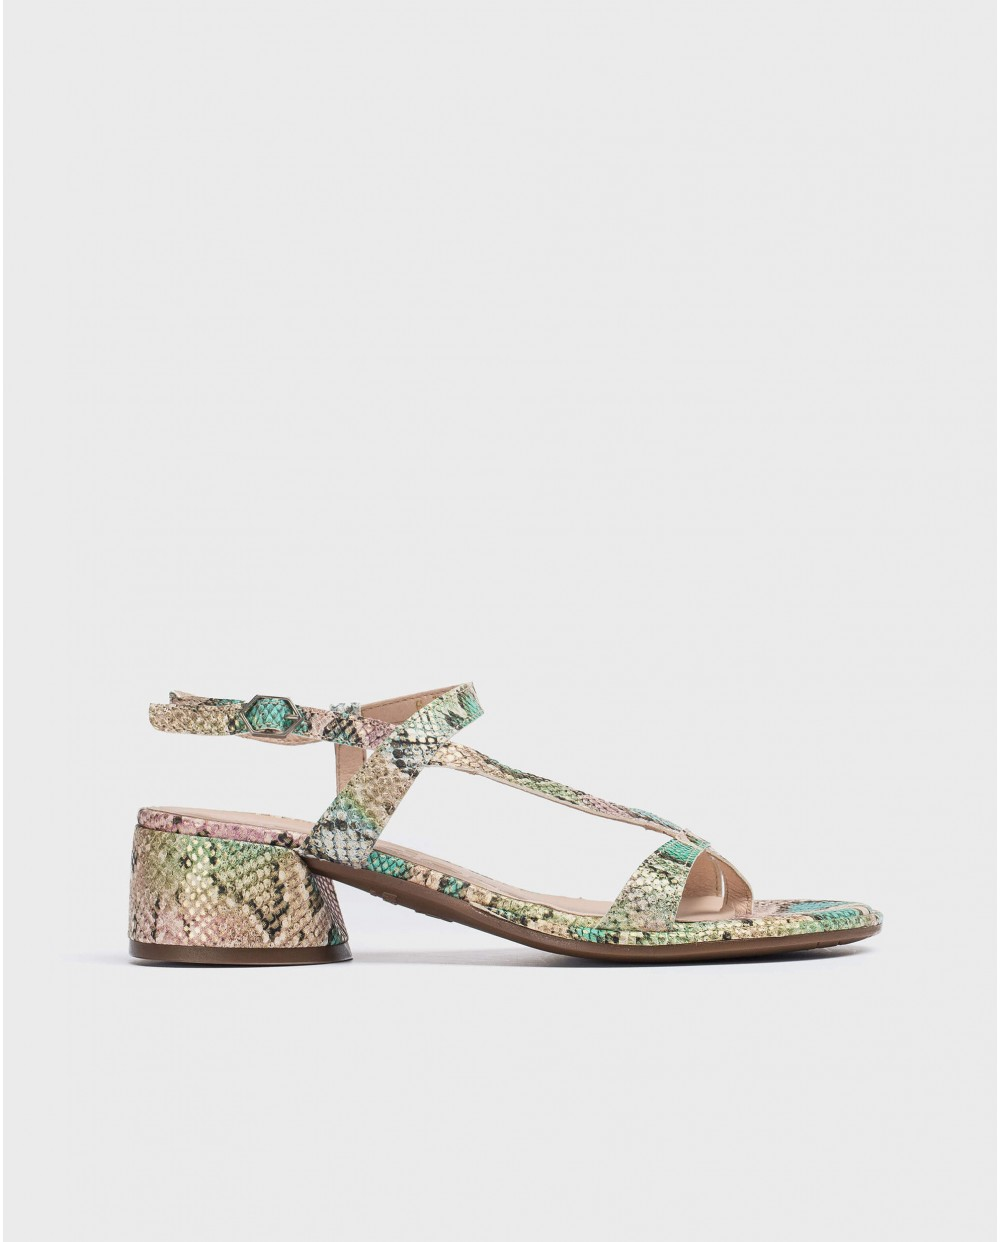 Wonders-Sandals-Sandal with toe post and heel